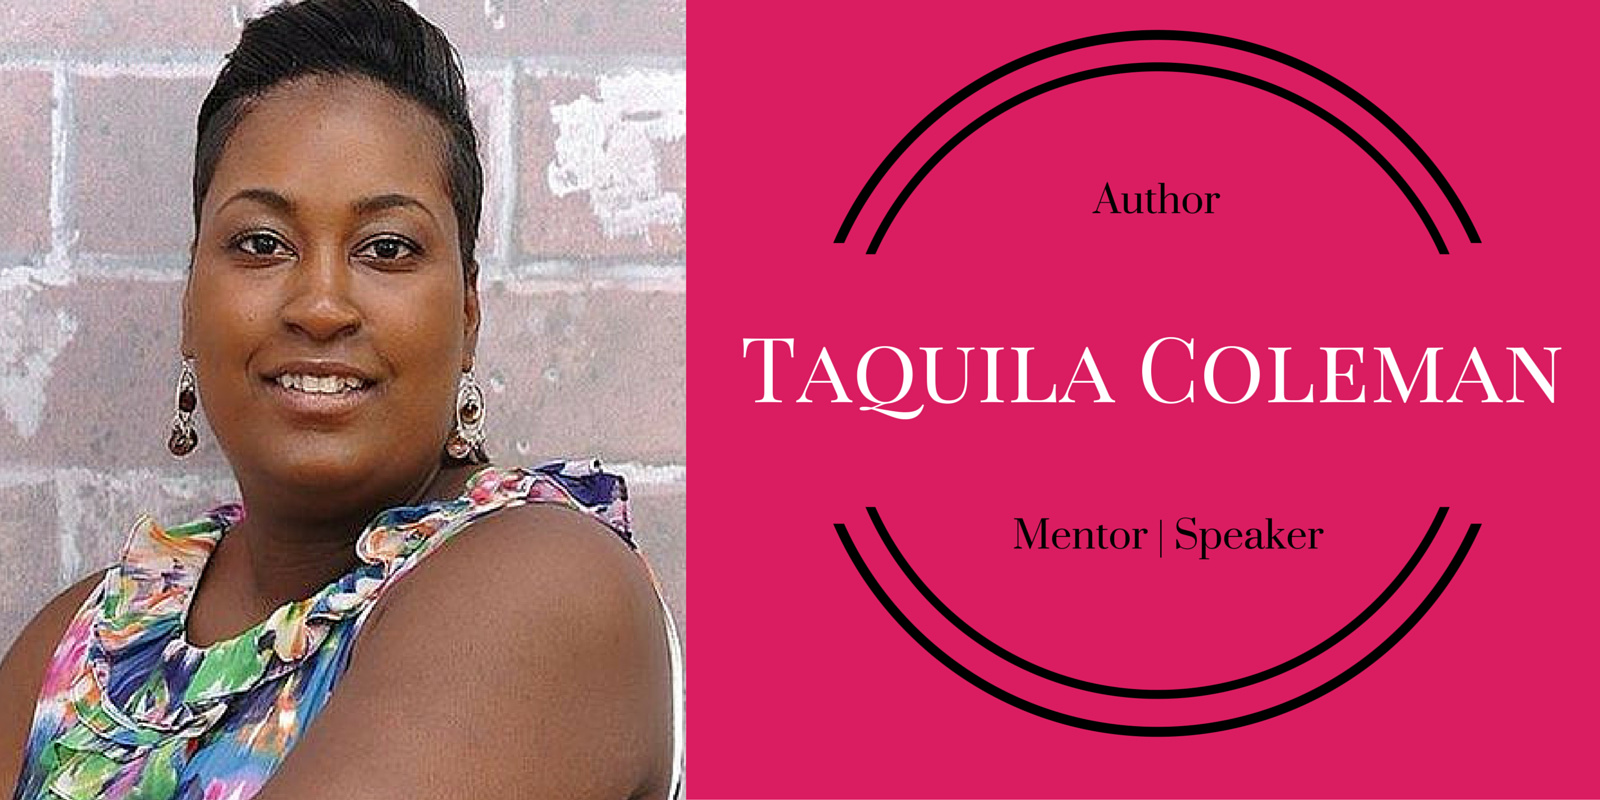 Taquila Coleman, Relationship Coach and Mentor